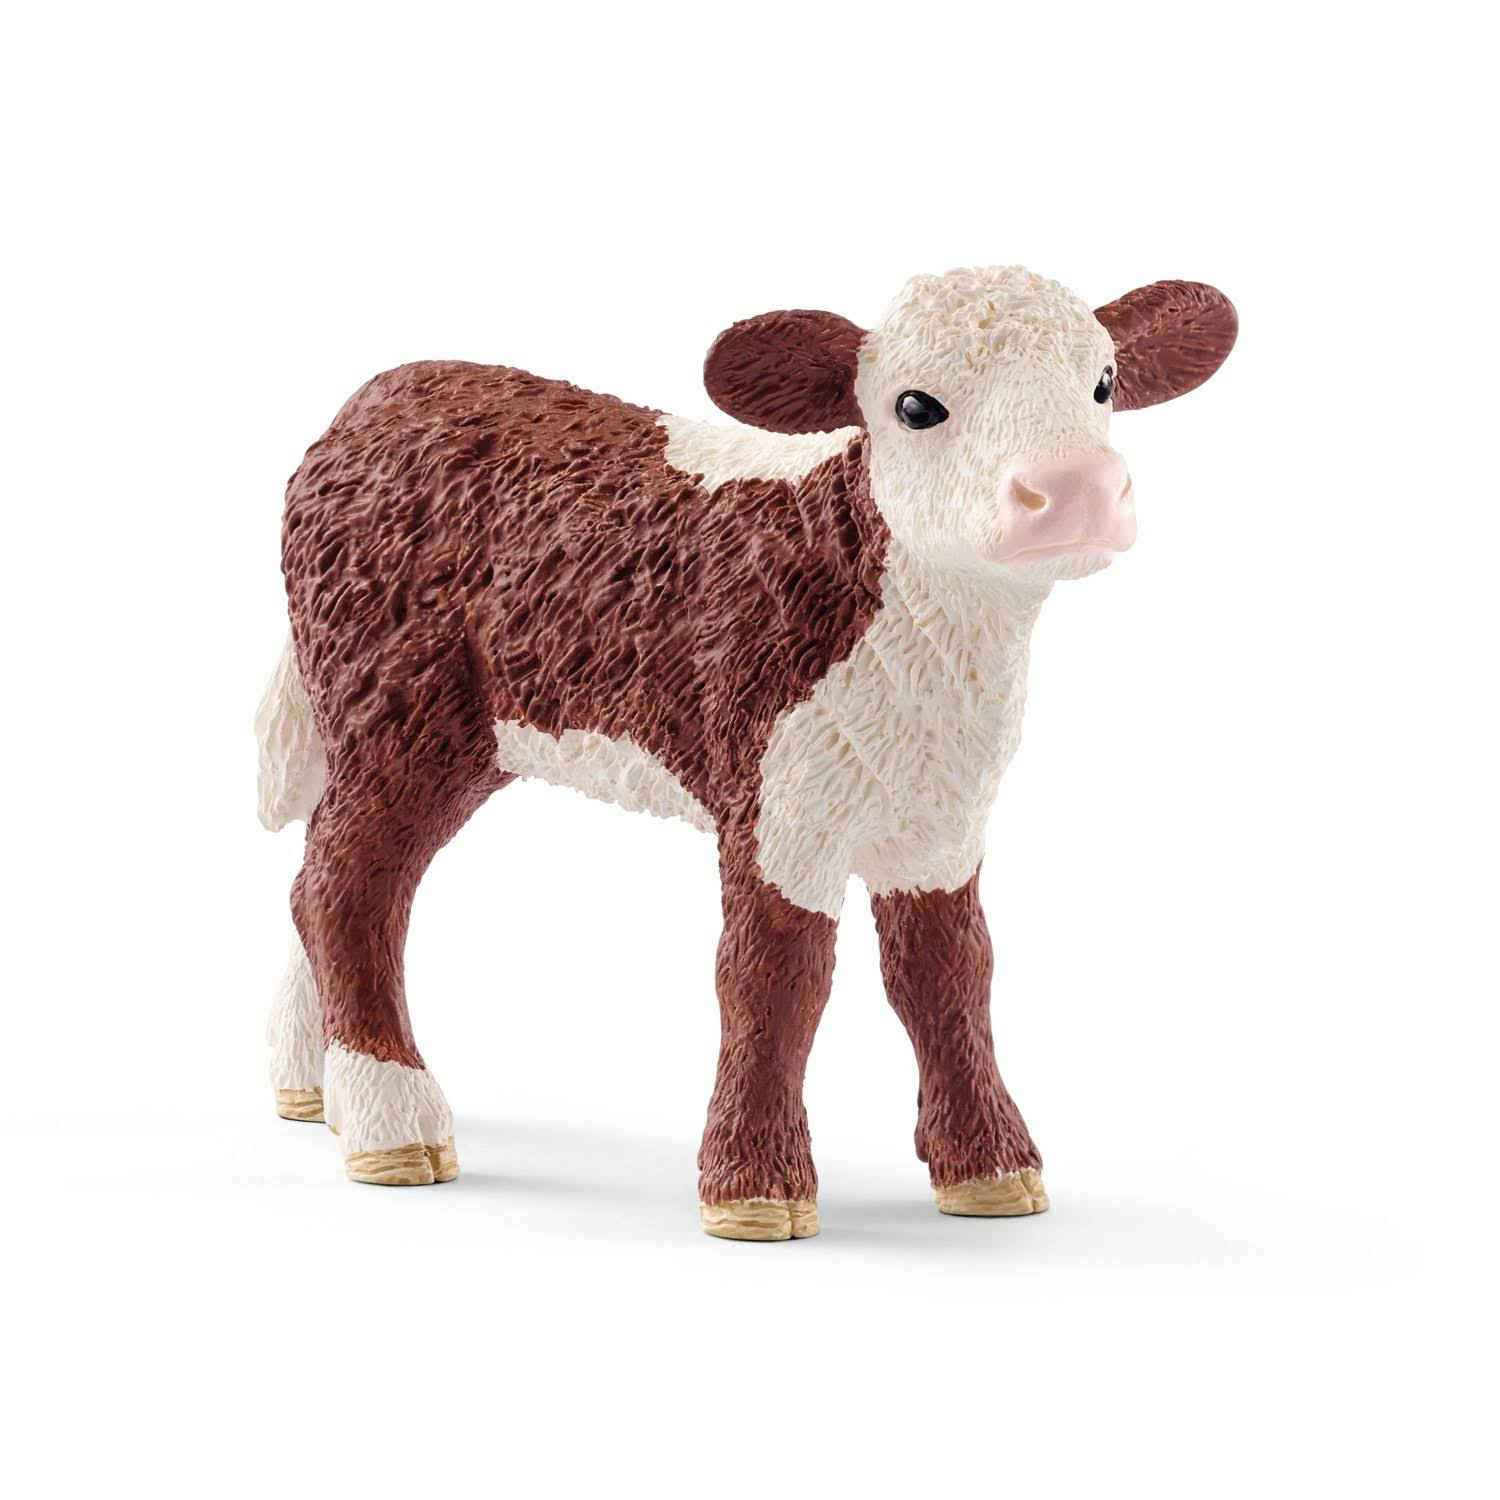 Schleich Farm World Hereford Calf Collectable Animal Figure